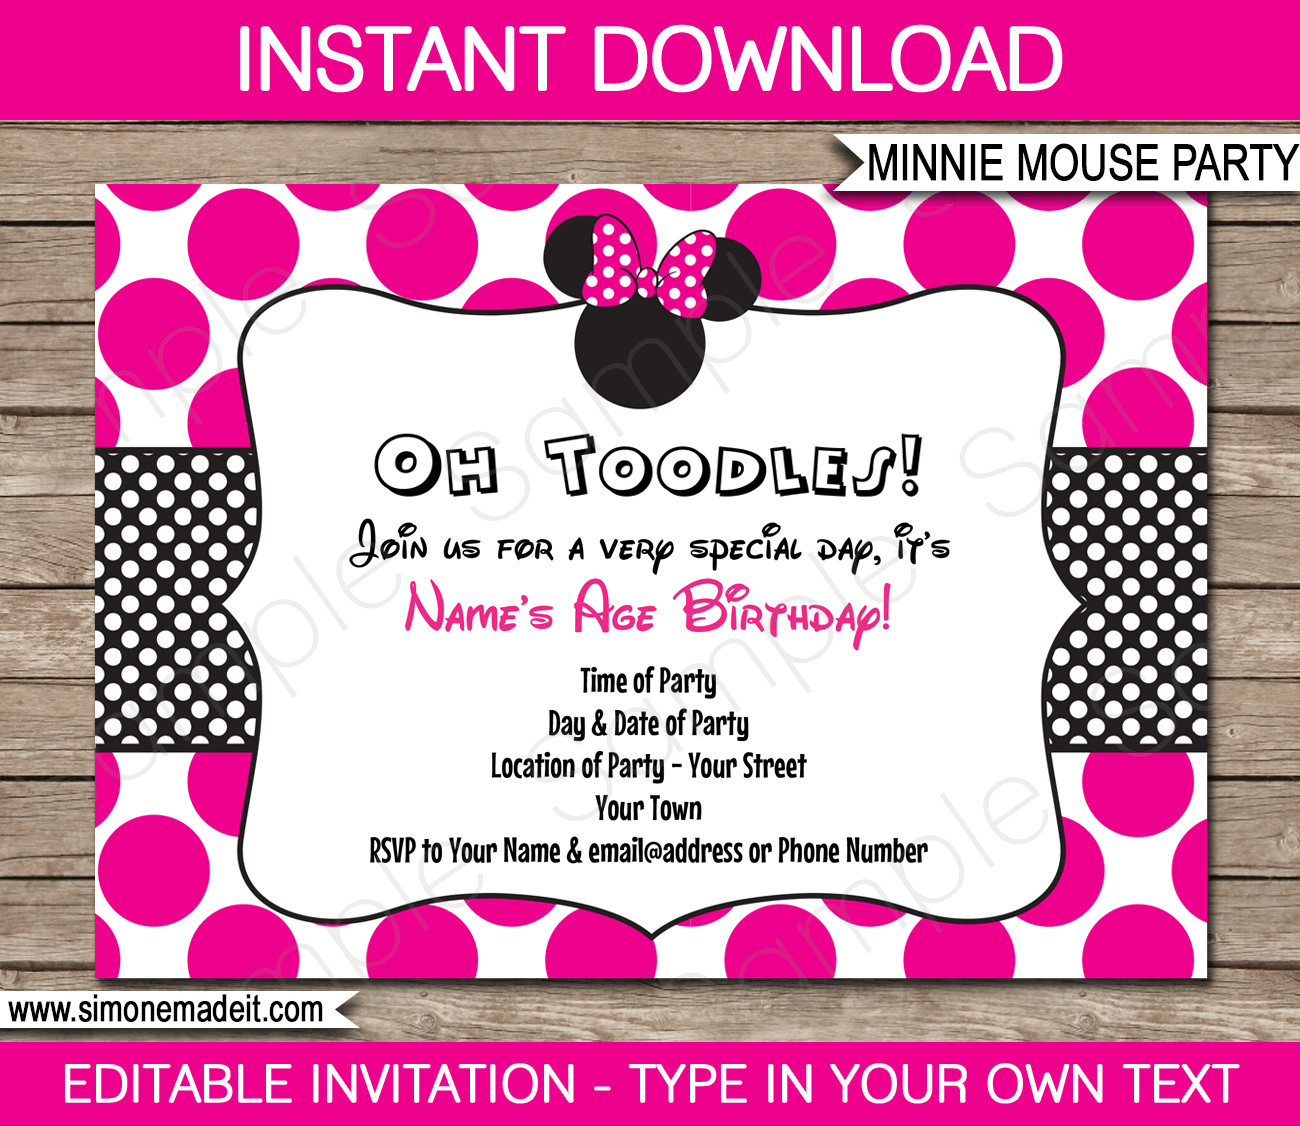 Minnie Mouse Party Invitations Minnie Mouse Party Invitations Template